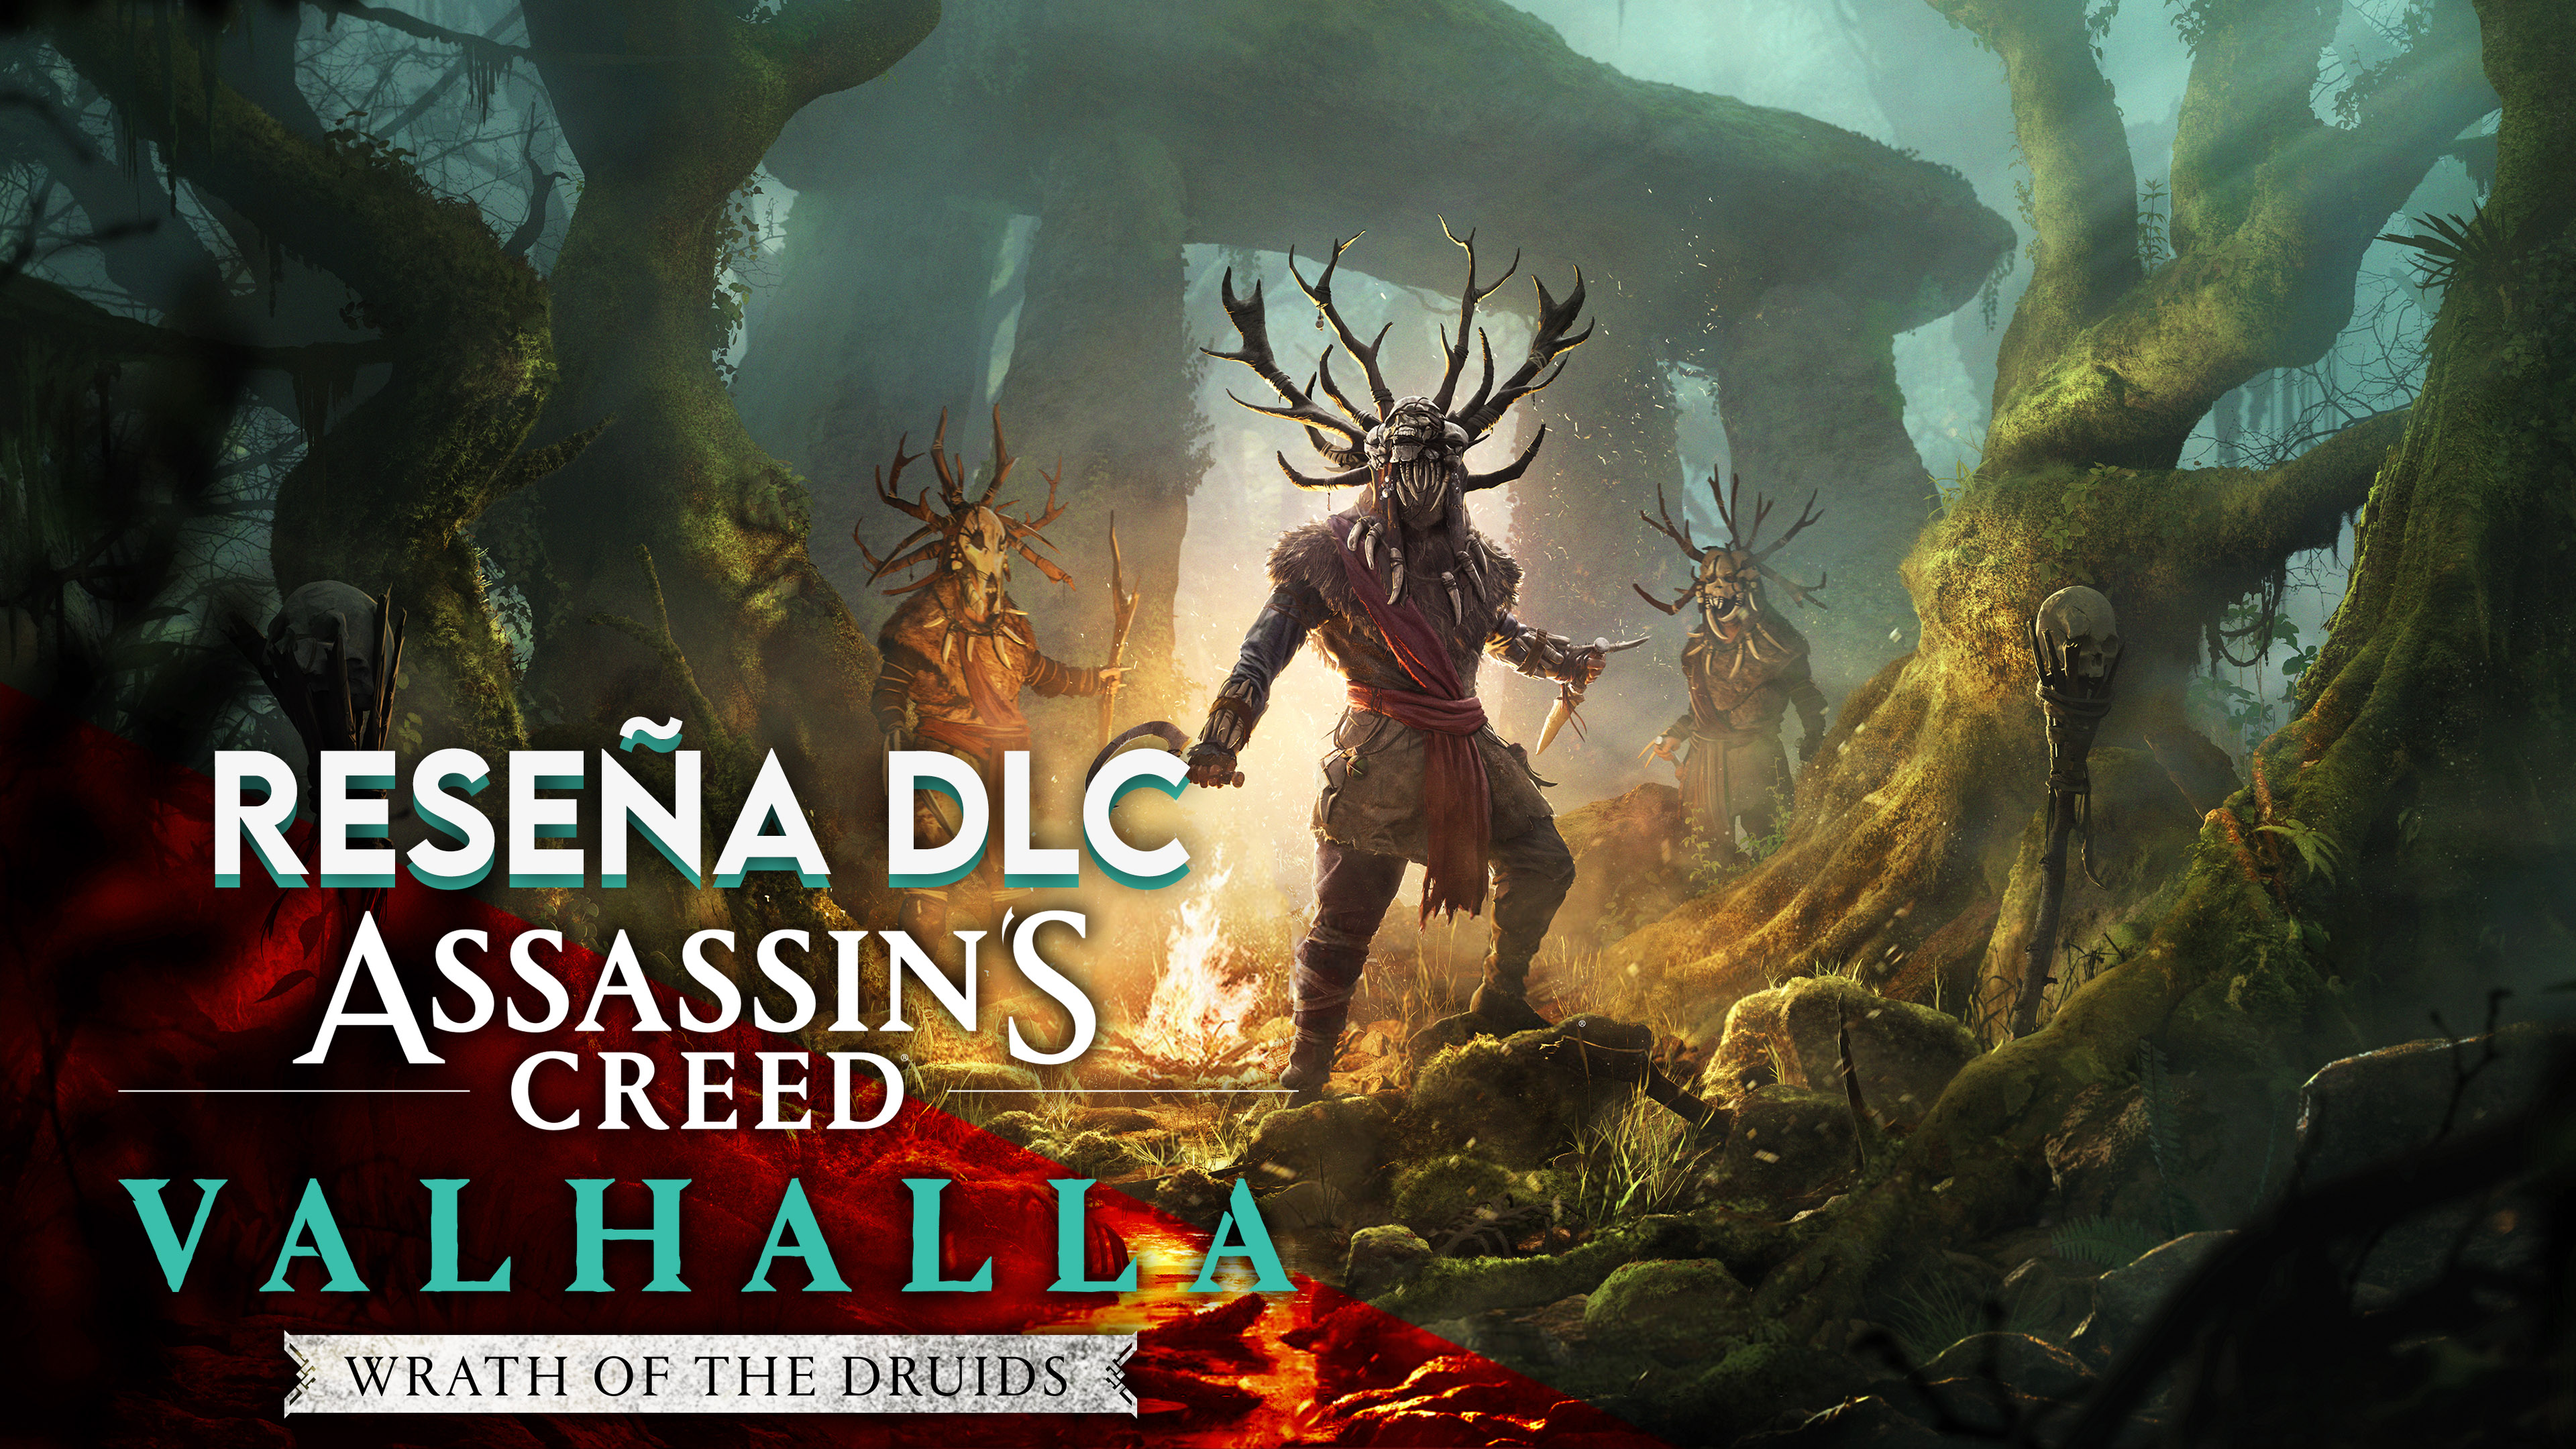 Reseña DLC Assassin's Creed Valhalla: Wrath of the Druids – ¡Vamos rumbo a Irlanda!